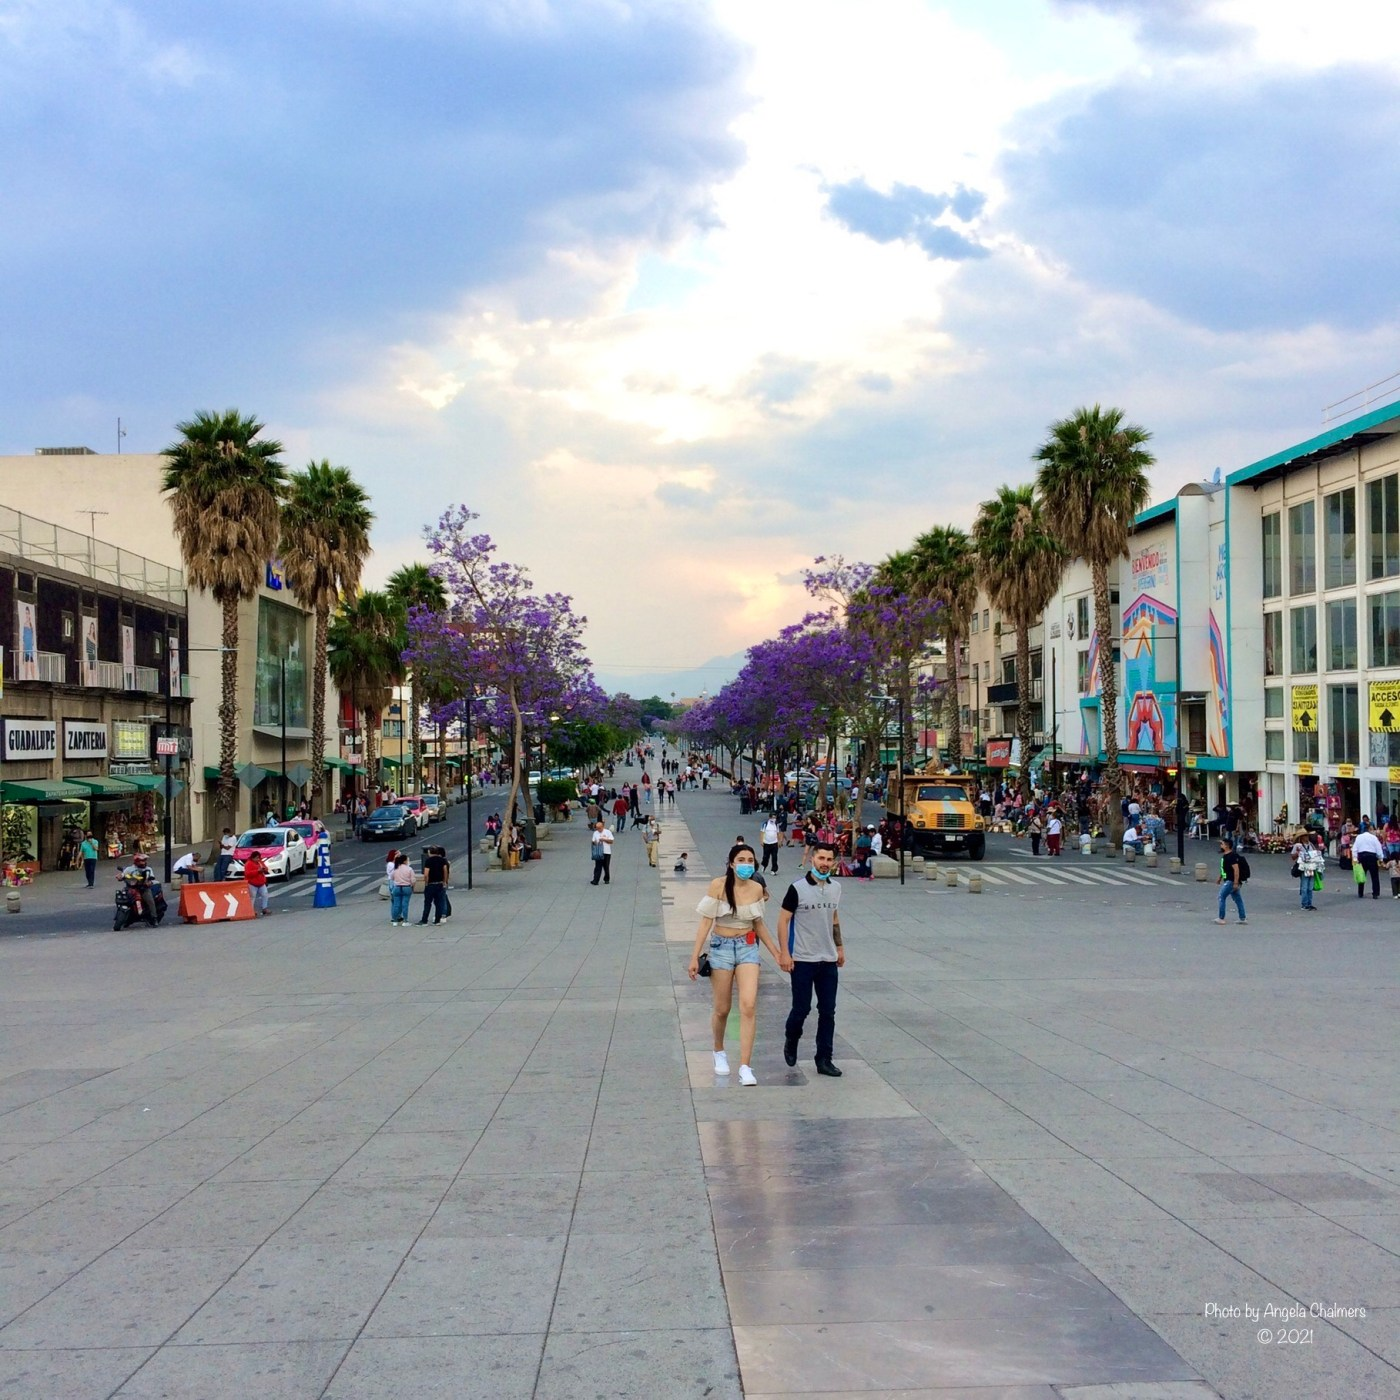 Countries open to US travelers, Calz. De Guadalupe, Mexico City Mexico